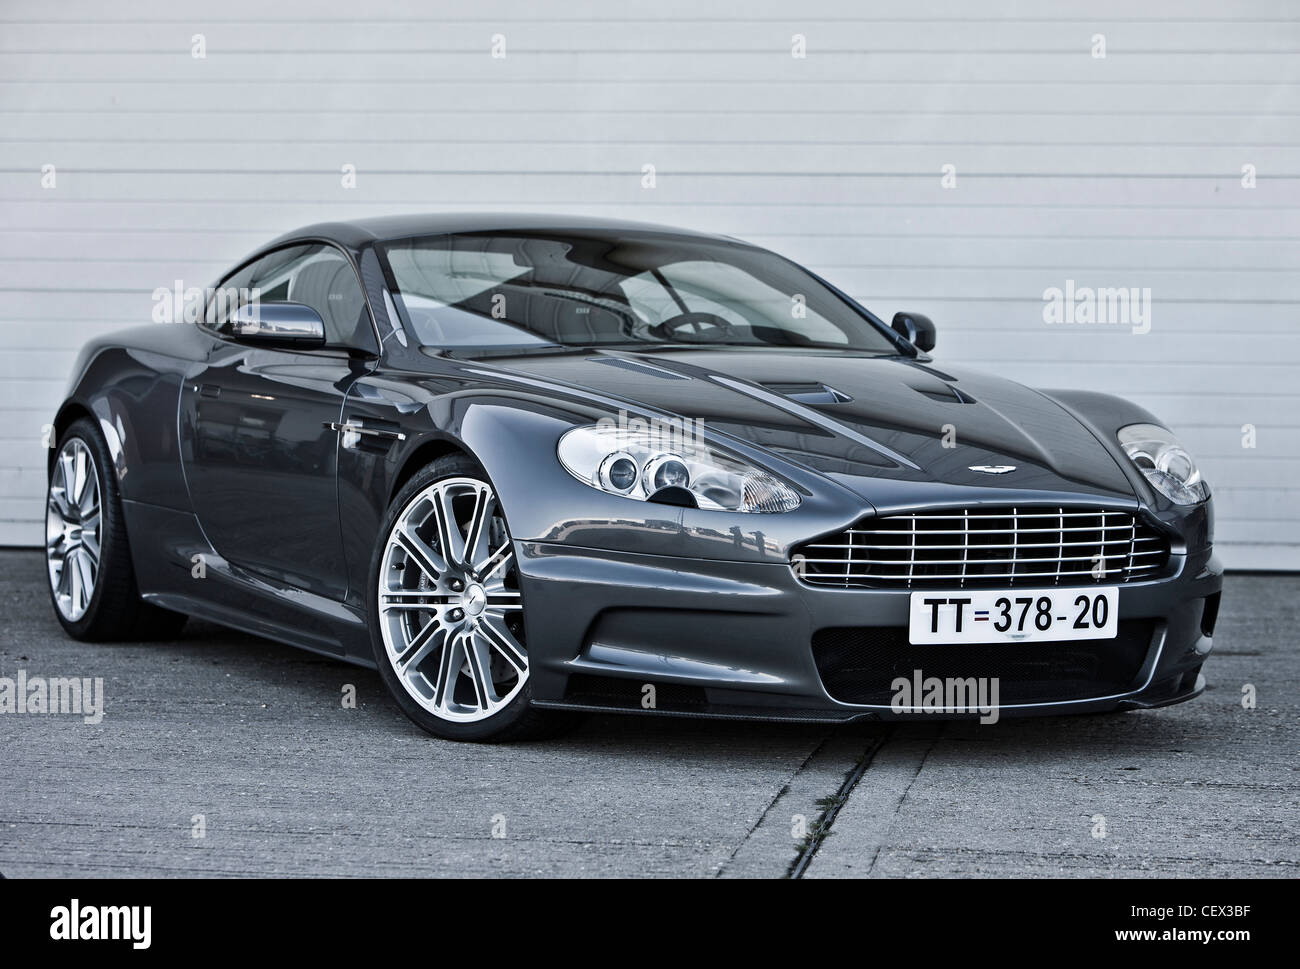 Vintage Aston Martin Cars High Resolution Stock Photography And Images Alamy